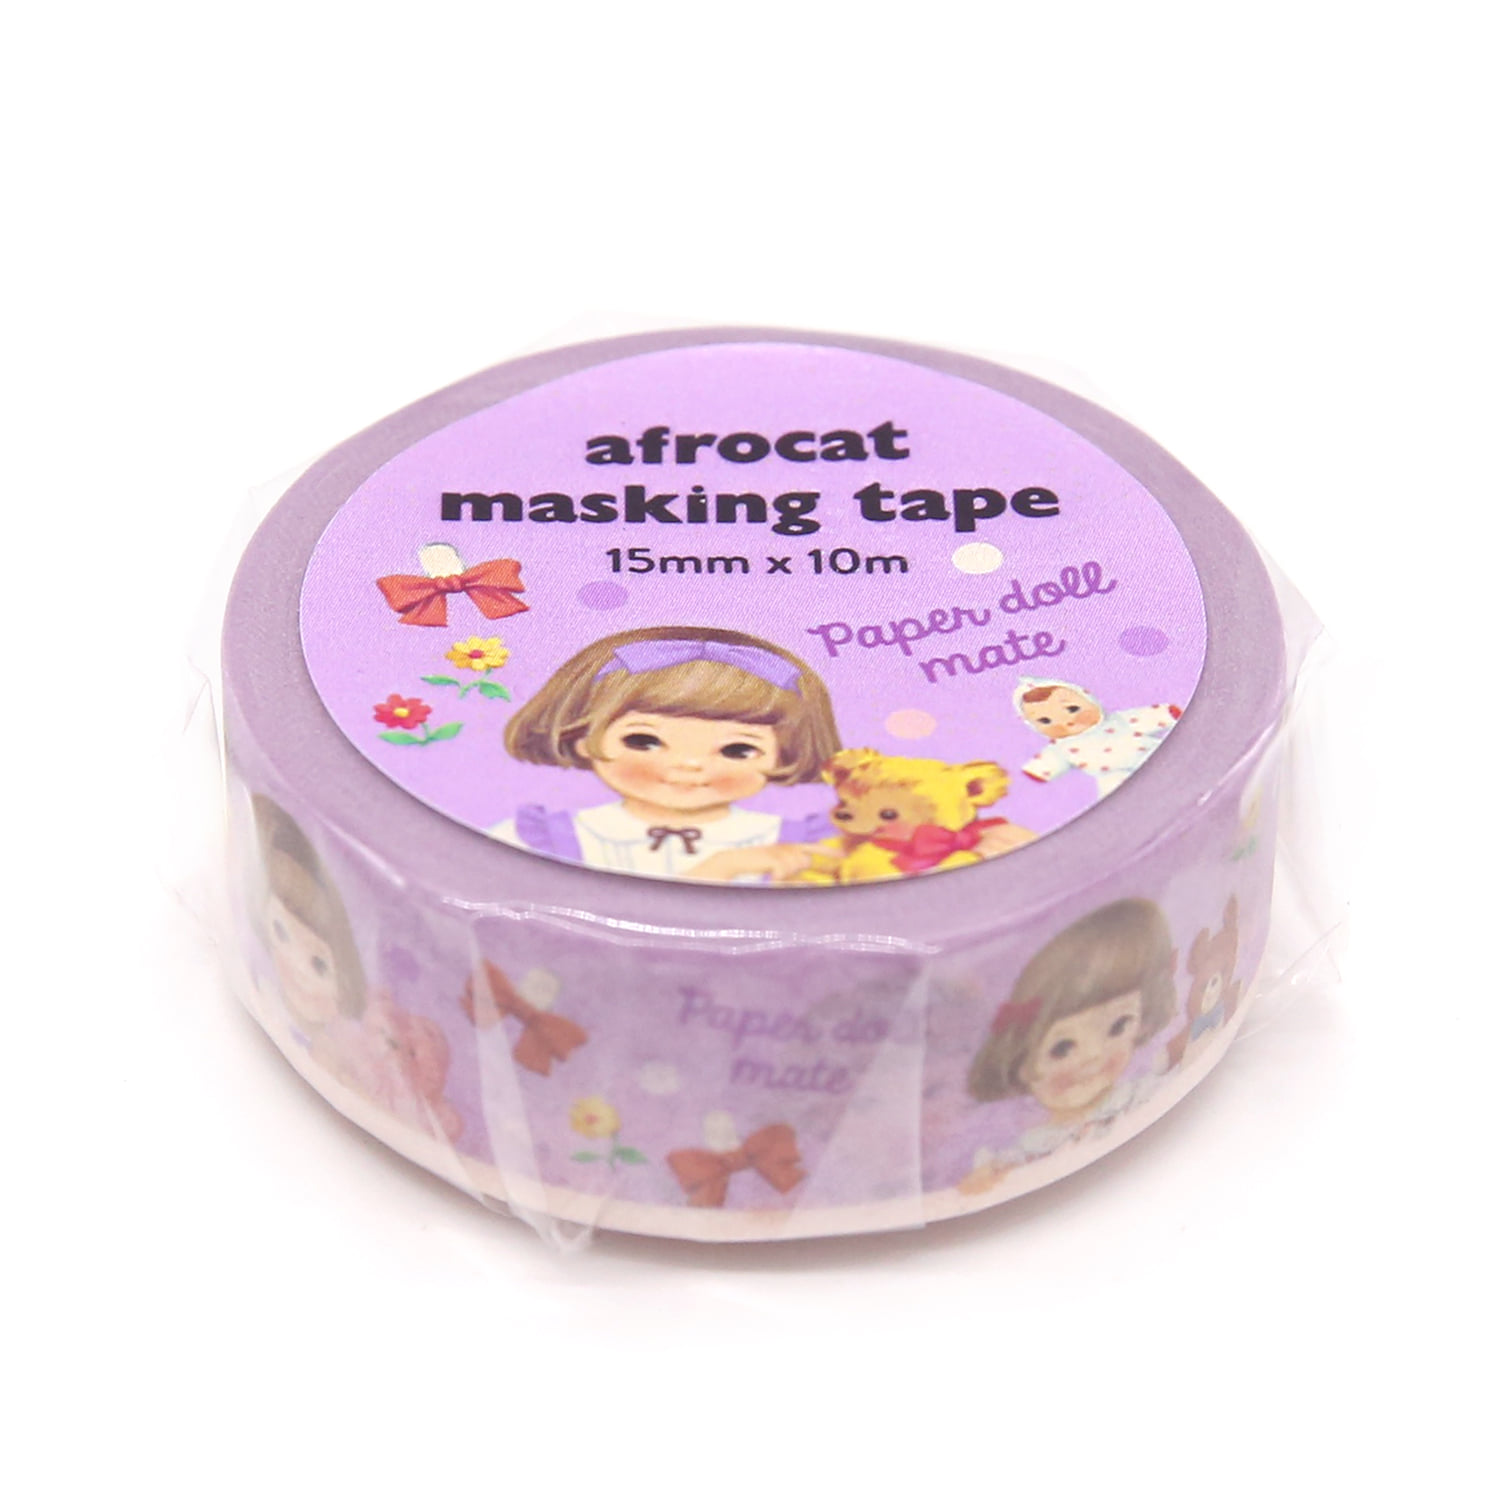 [afrocat masking tape] 3. Paper doll mate_ sally 15mm